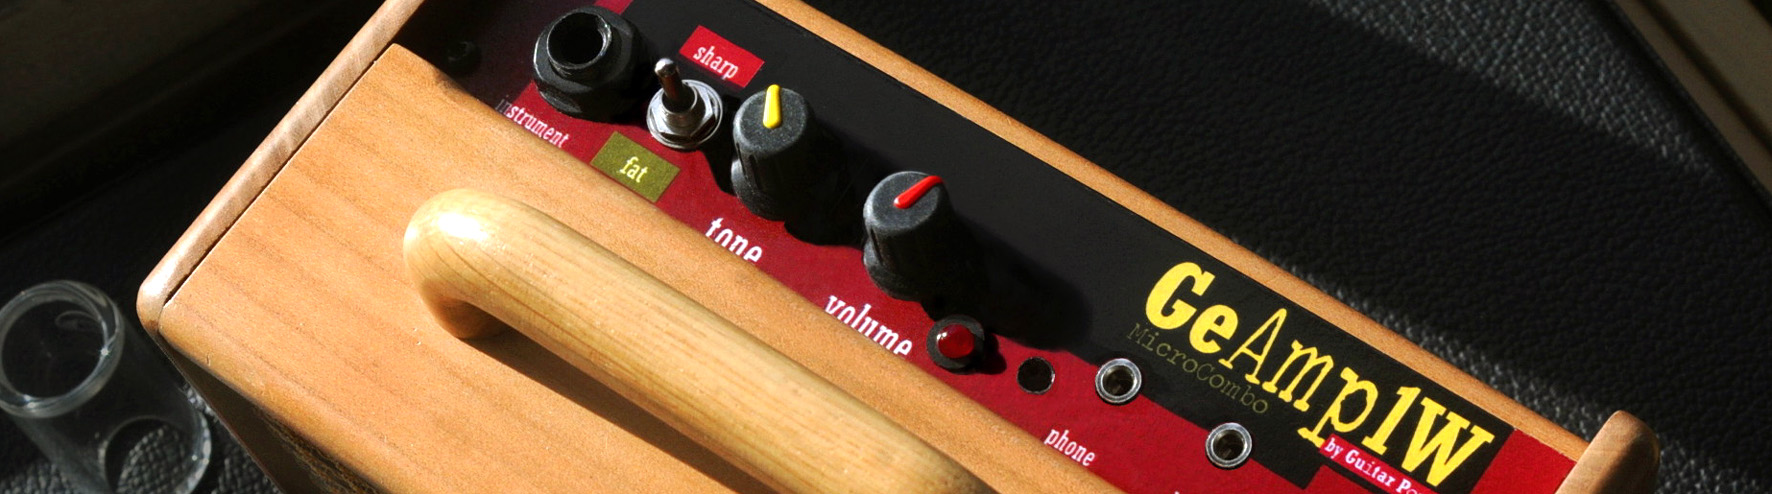 MicroCombo GeAmp1W, micro ampli au germanium